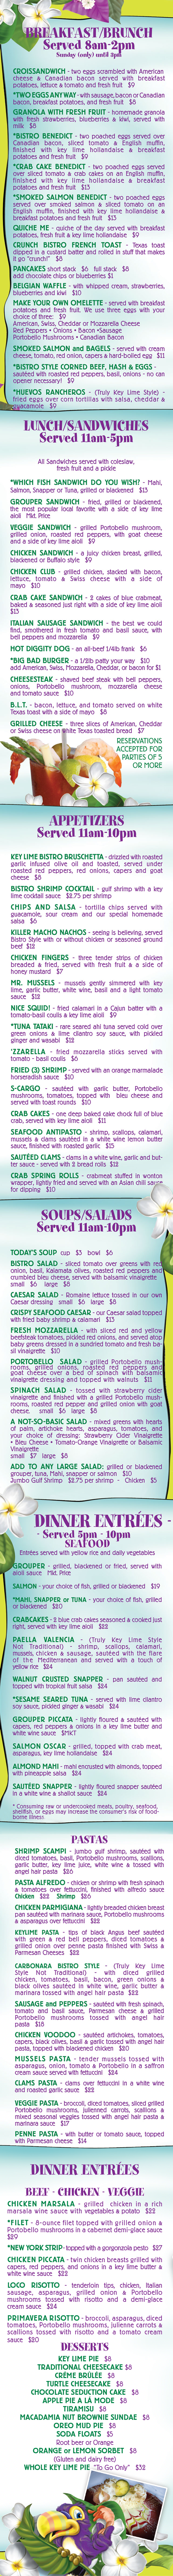 Keylime Bistro Restaurant Menu | Restaurants on Captiva